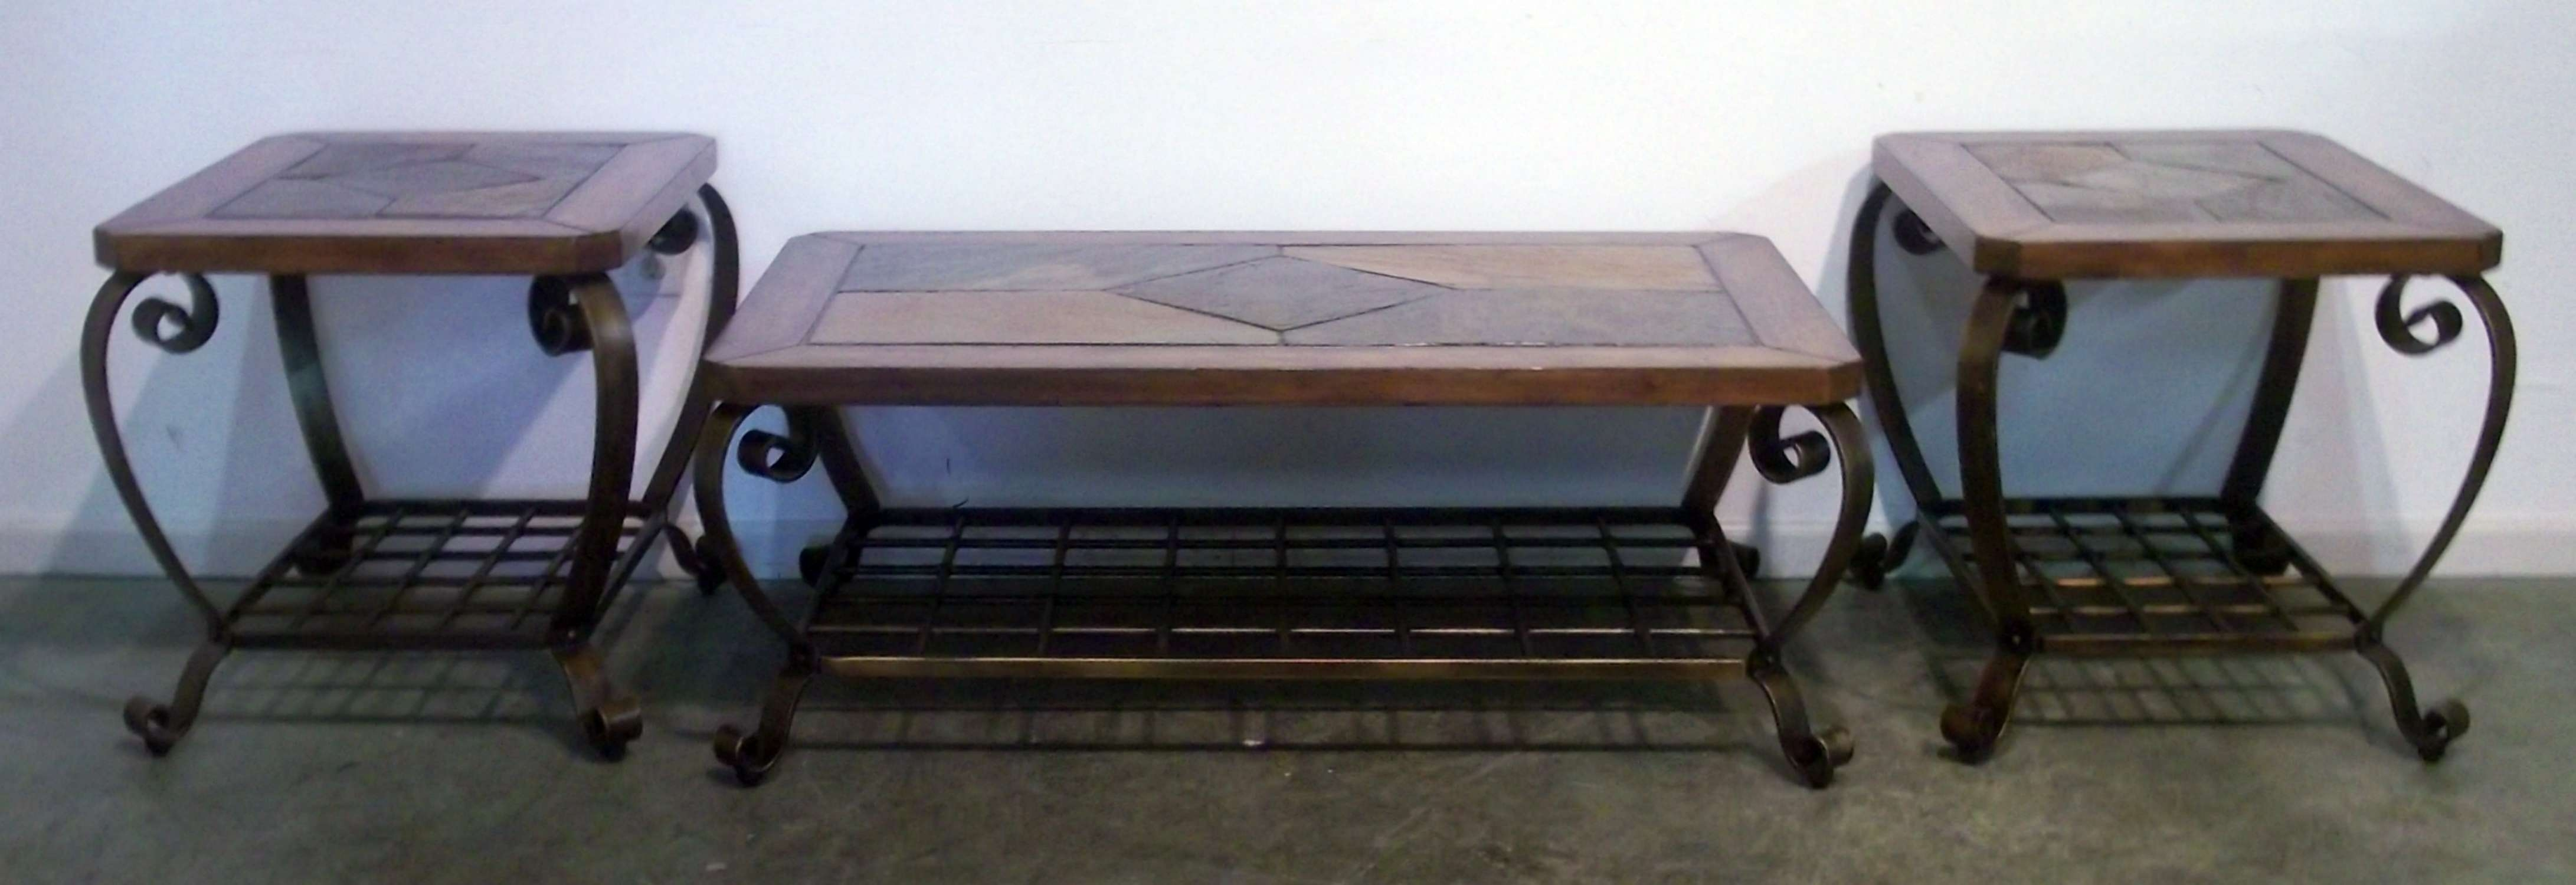 Preferred Round Slate Top Coffee Tables Within Round Slate Coffee Table – Coffeetable (View 16 of 20)